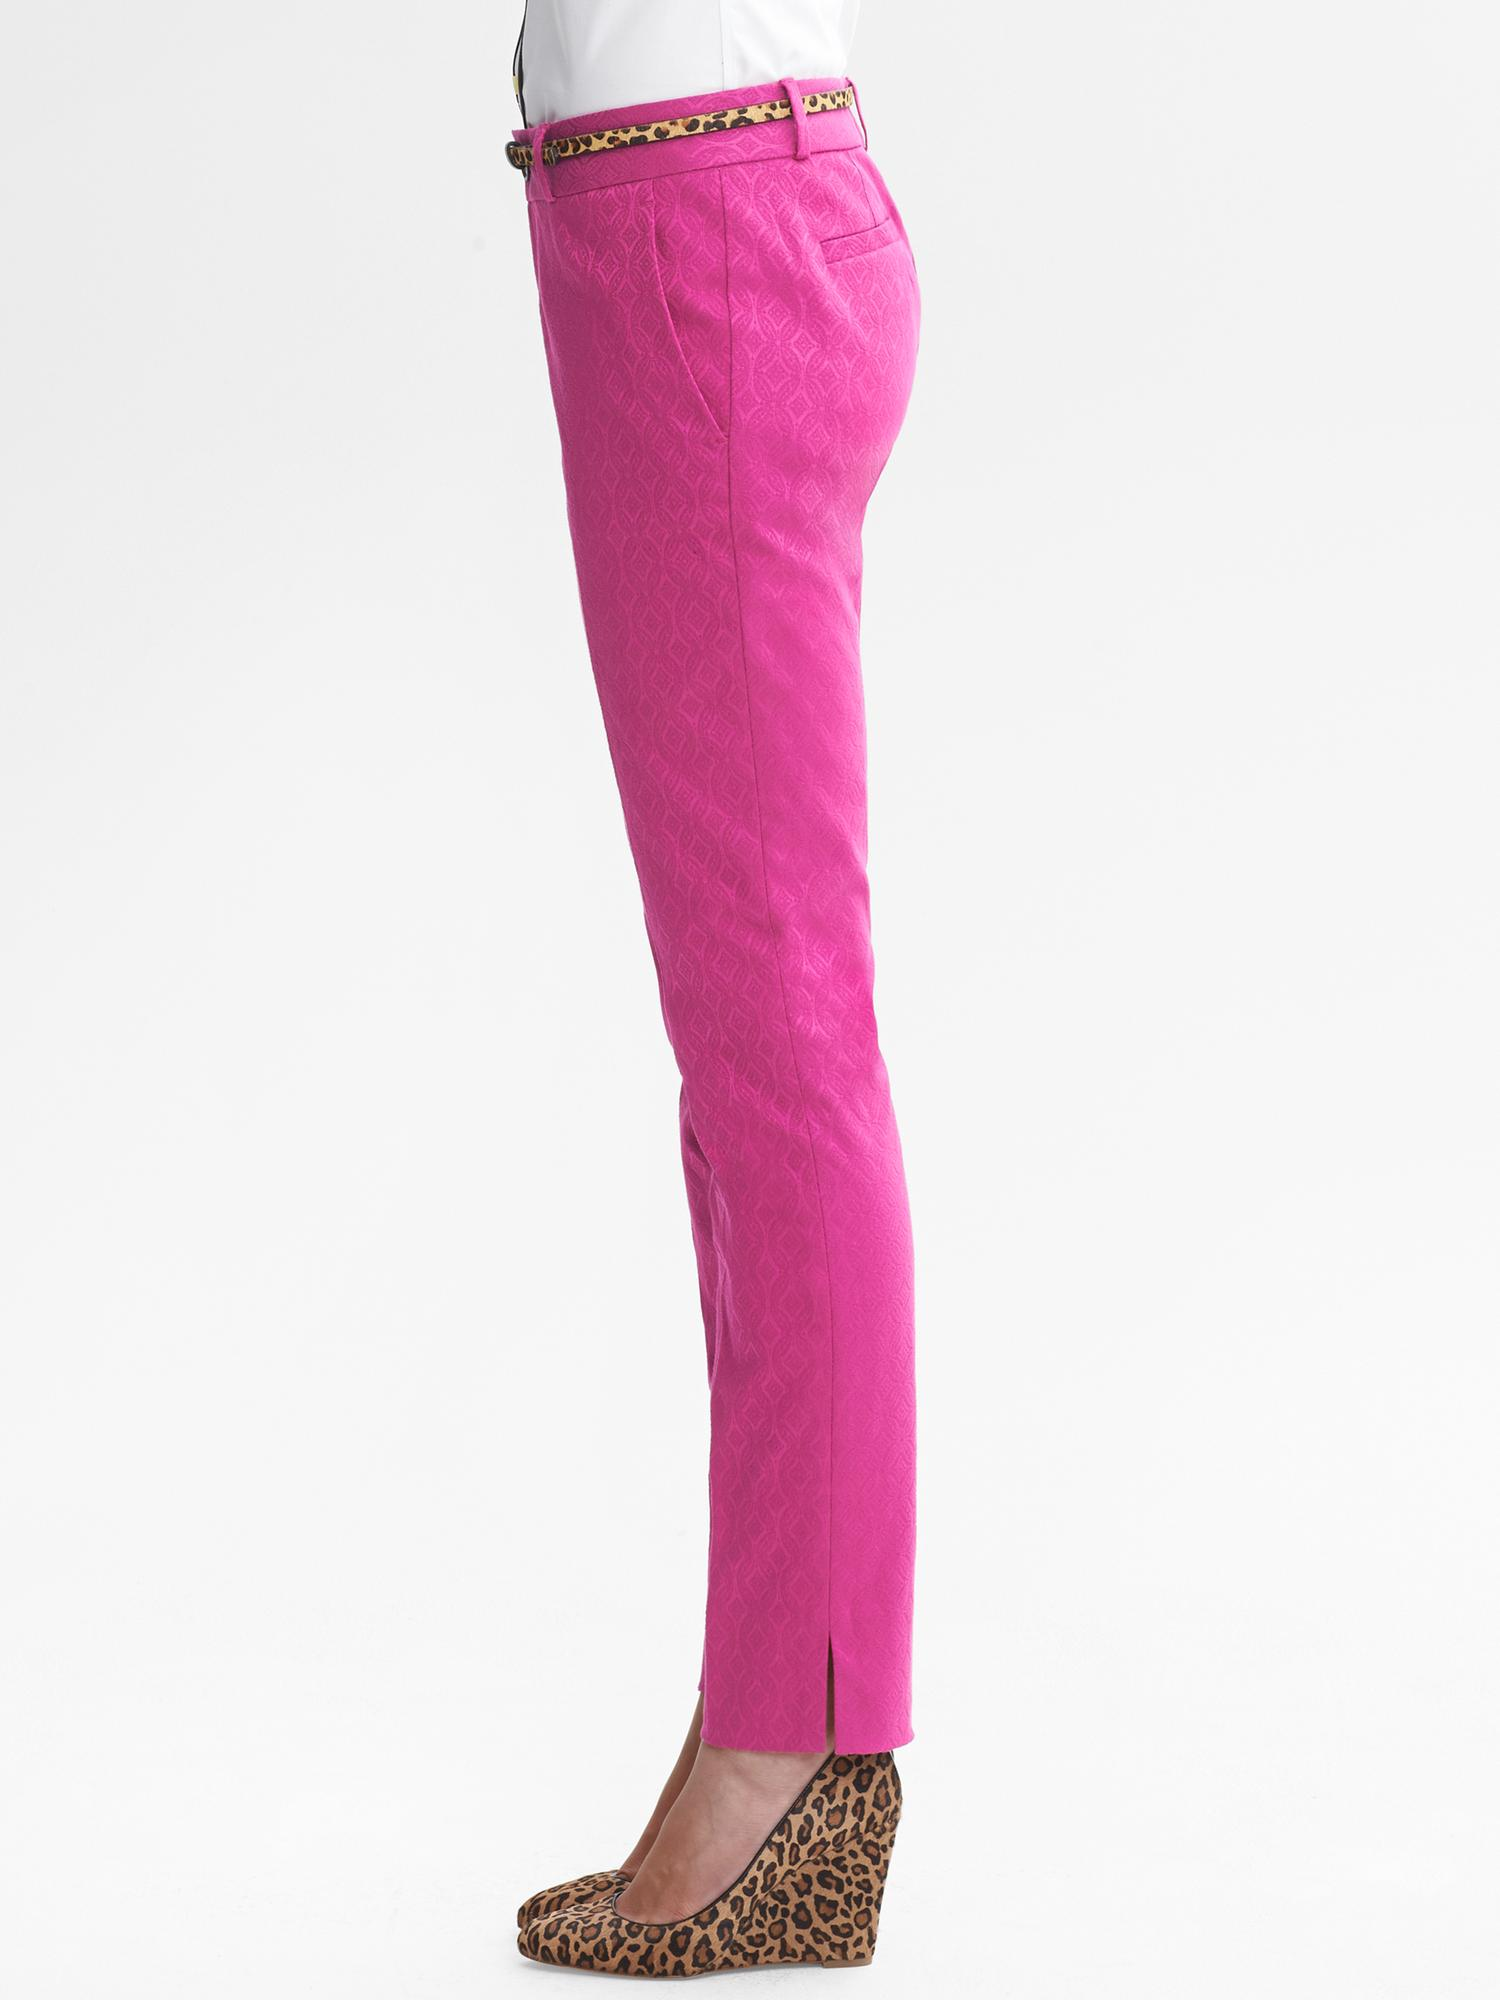 39cec8a876d7f9 Banana Republic Camdenfit Pink Jacquard Skinny Ankle Pant in Pink - Lyst